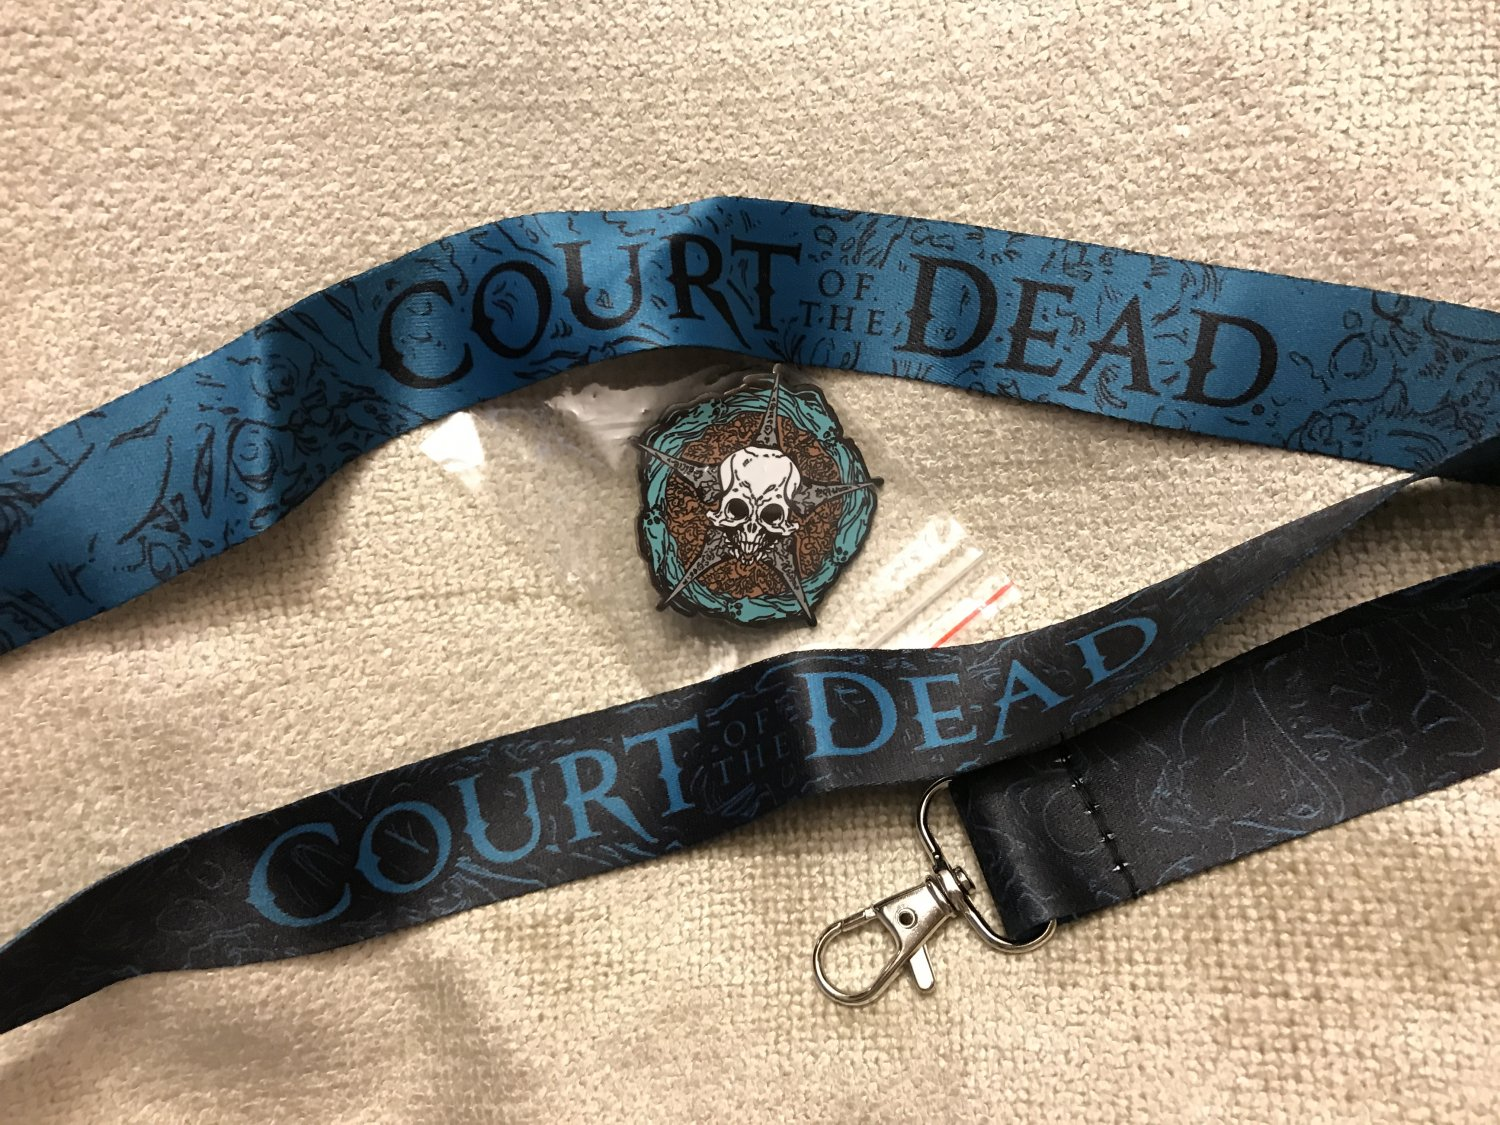 SDCC 2017 Exclusive Sideshow Court of the Dead pin and lanyard collectables